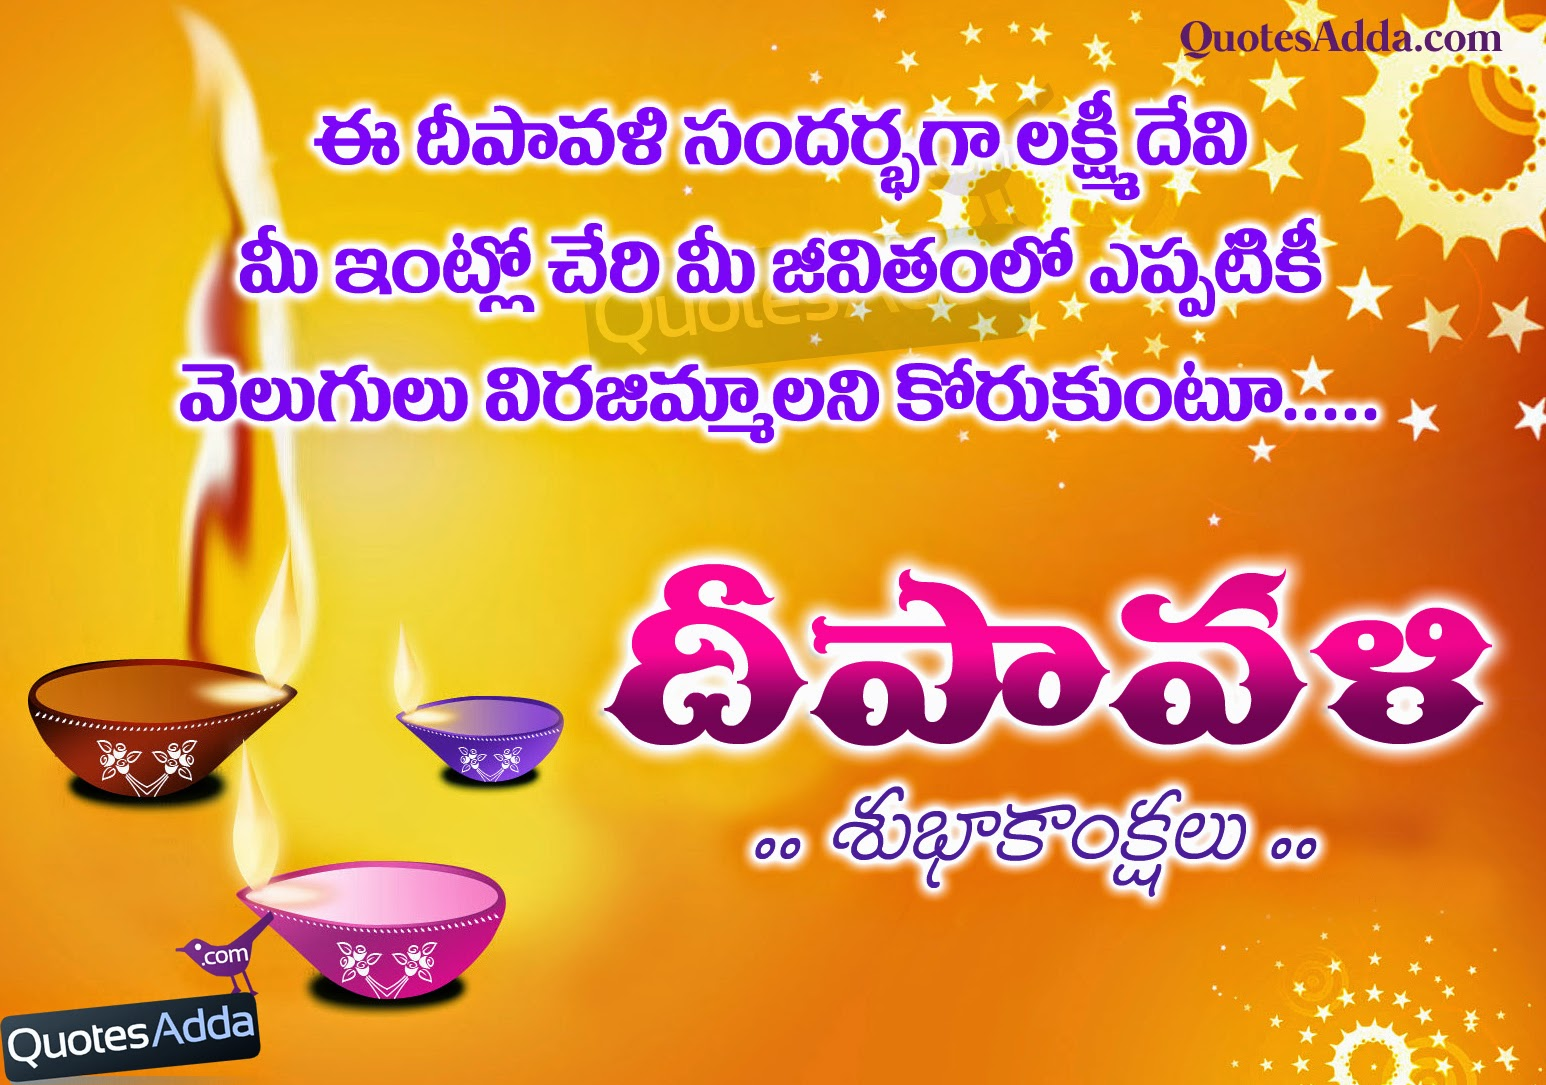 Diwali quotes for friends and family unique best diwali messages diwali quotes for friends and family kristyandbryce Choice Image